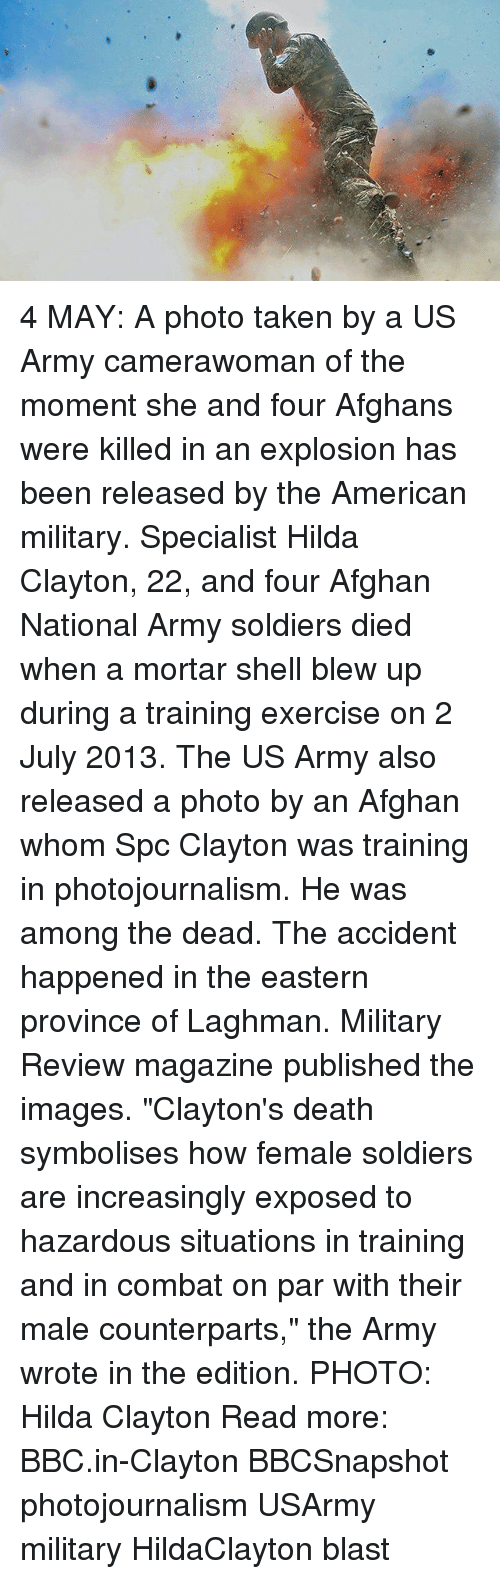 "Memes, Soldiers, and Taken: 4 MAY: A photo taken by a US Army camerawoman of the moment she and four Afghans were killed in an explosion has been released by the American military. Specialist Hilda Clayton, 22, and four Afghan National Army soldiers died when a mortar shell blew up during a training exercise on 2 July 2013. The US Army also released a photo by an Afghan whom Spc Clayton was training in photojournalism. He was among the dead. The accident happened in the eastern province of Laghman. Military Review magazine published the images. ""Clayton's death symbolises how female soldiers are increasingly exposed to hazardous situations in training and in combat on par with their male counterparts,"" the Army wrote in the edition. PHOTO: Hilda Clayton Read more: BBC.in-Clayton BBCSnapshot photojournalism USArmy military HildaClayton blast"